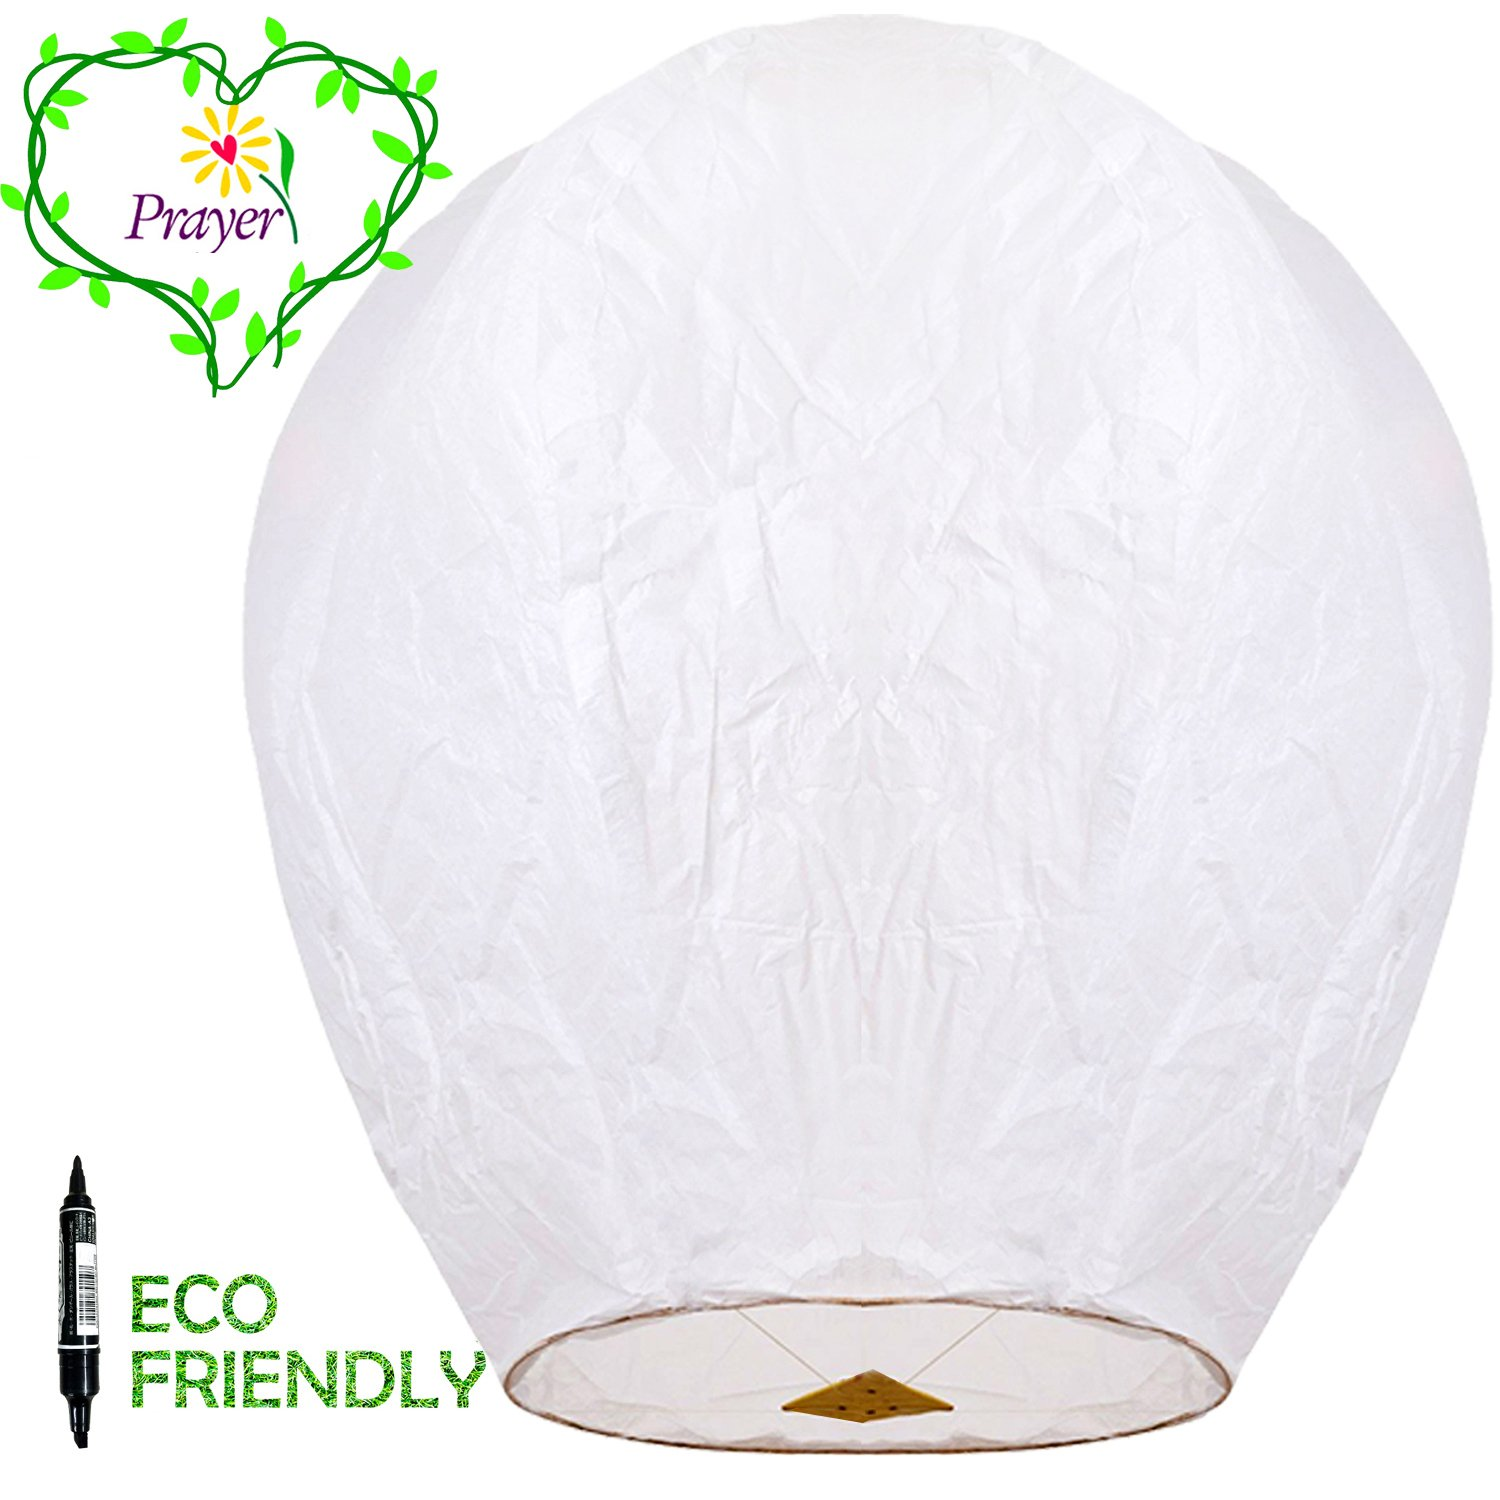 Chinese Lanterns & Sky Lanterns ECO Friendly - 100% Biodegradable - Beautiful Lantern for White for Weddings, Birthdays, Memorials and Much More (5 Pack) by Fun Entertainments